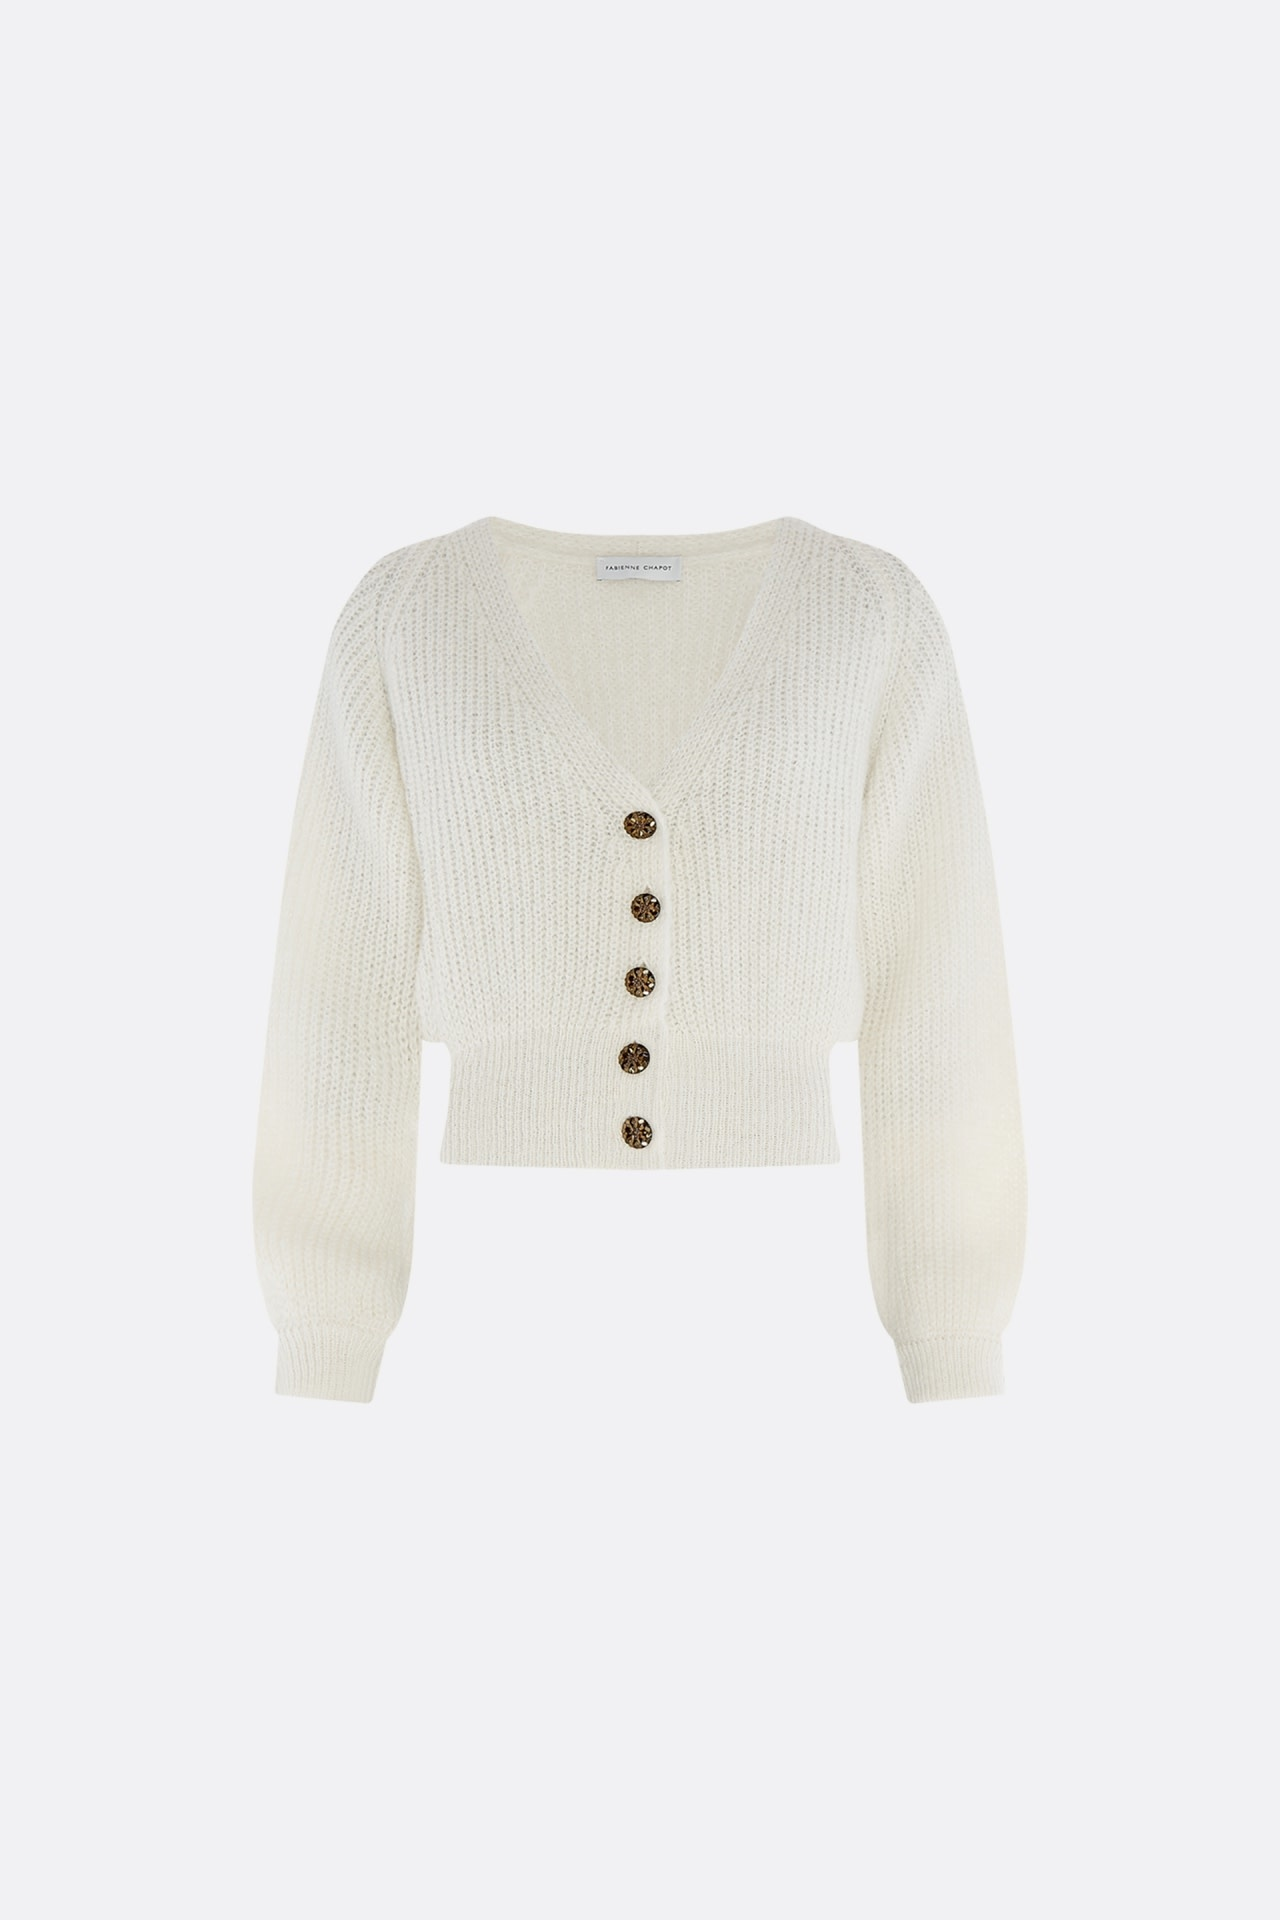 Starry cardigan offwhite-2